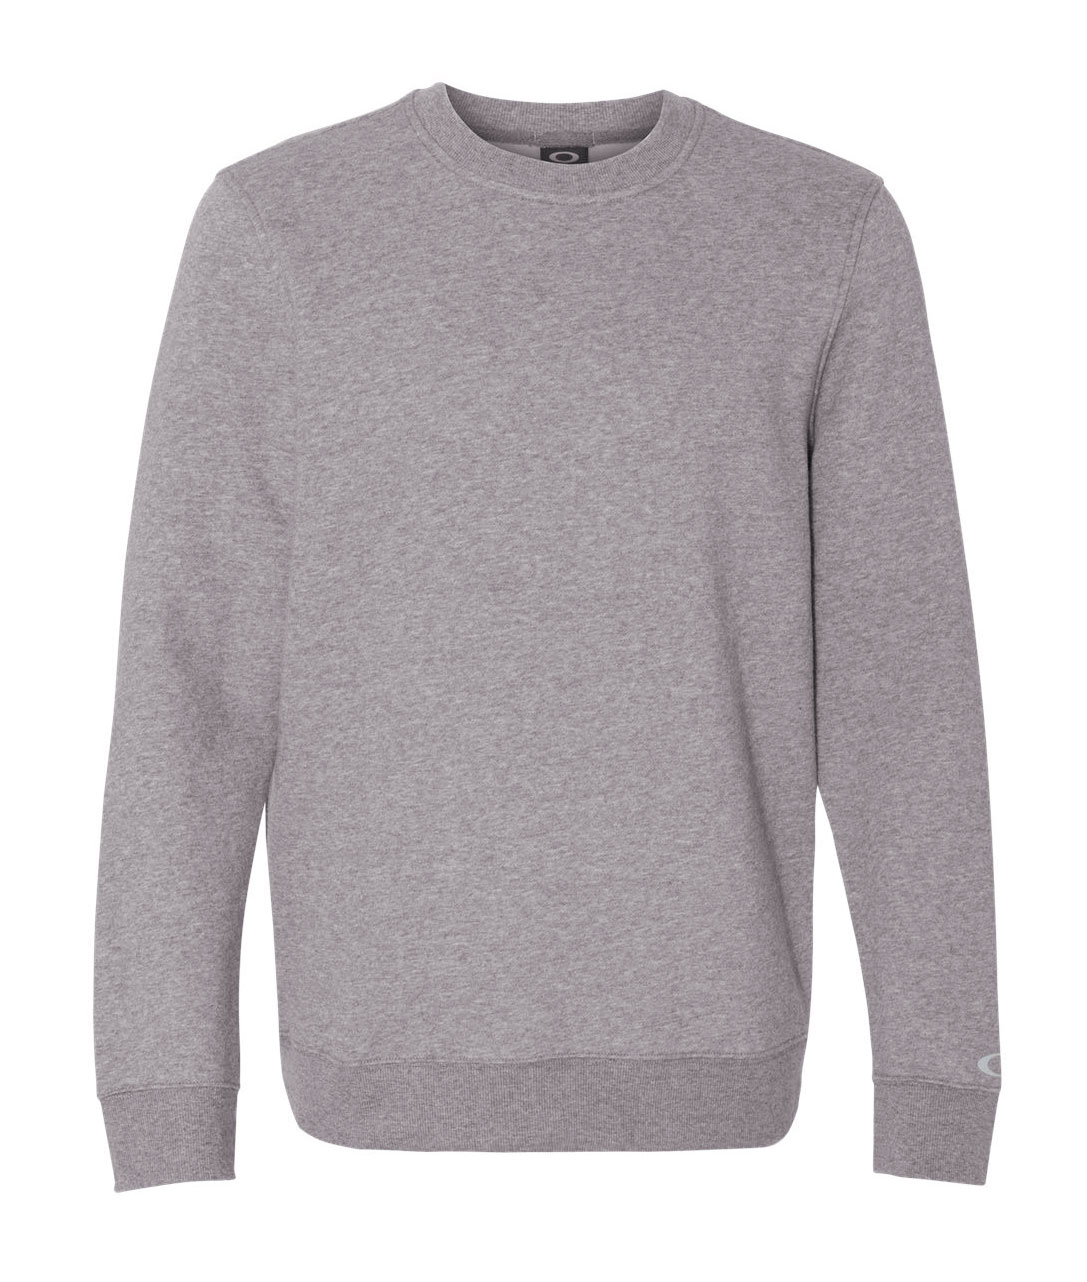 Oakley Adult Cotton Blend Crewneck Sweatshirt